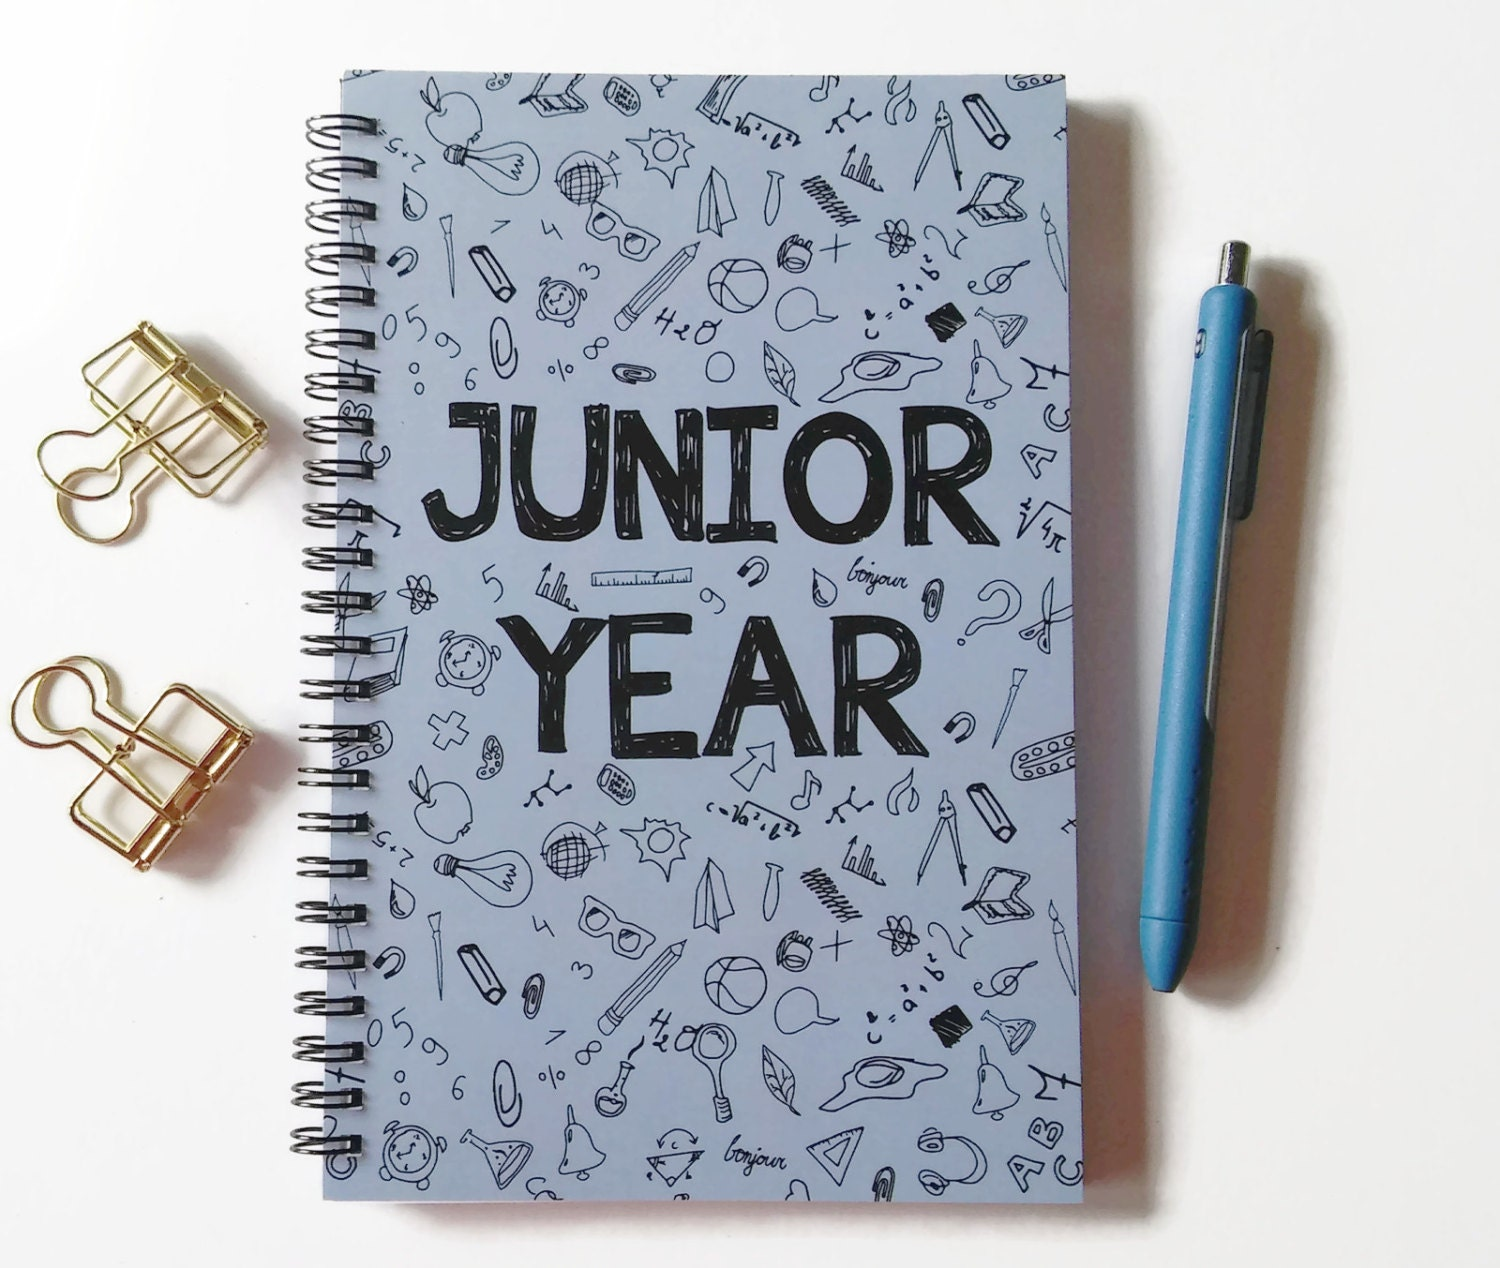 writing journal spiral notebook sketchbook bullet journal writing journal spiral notebook sketchbook bullet journal doodles high school college graduation gift blank lined grid junior year